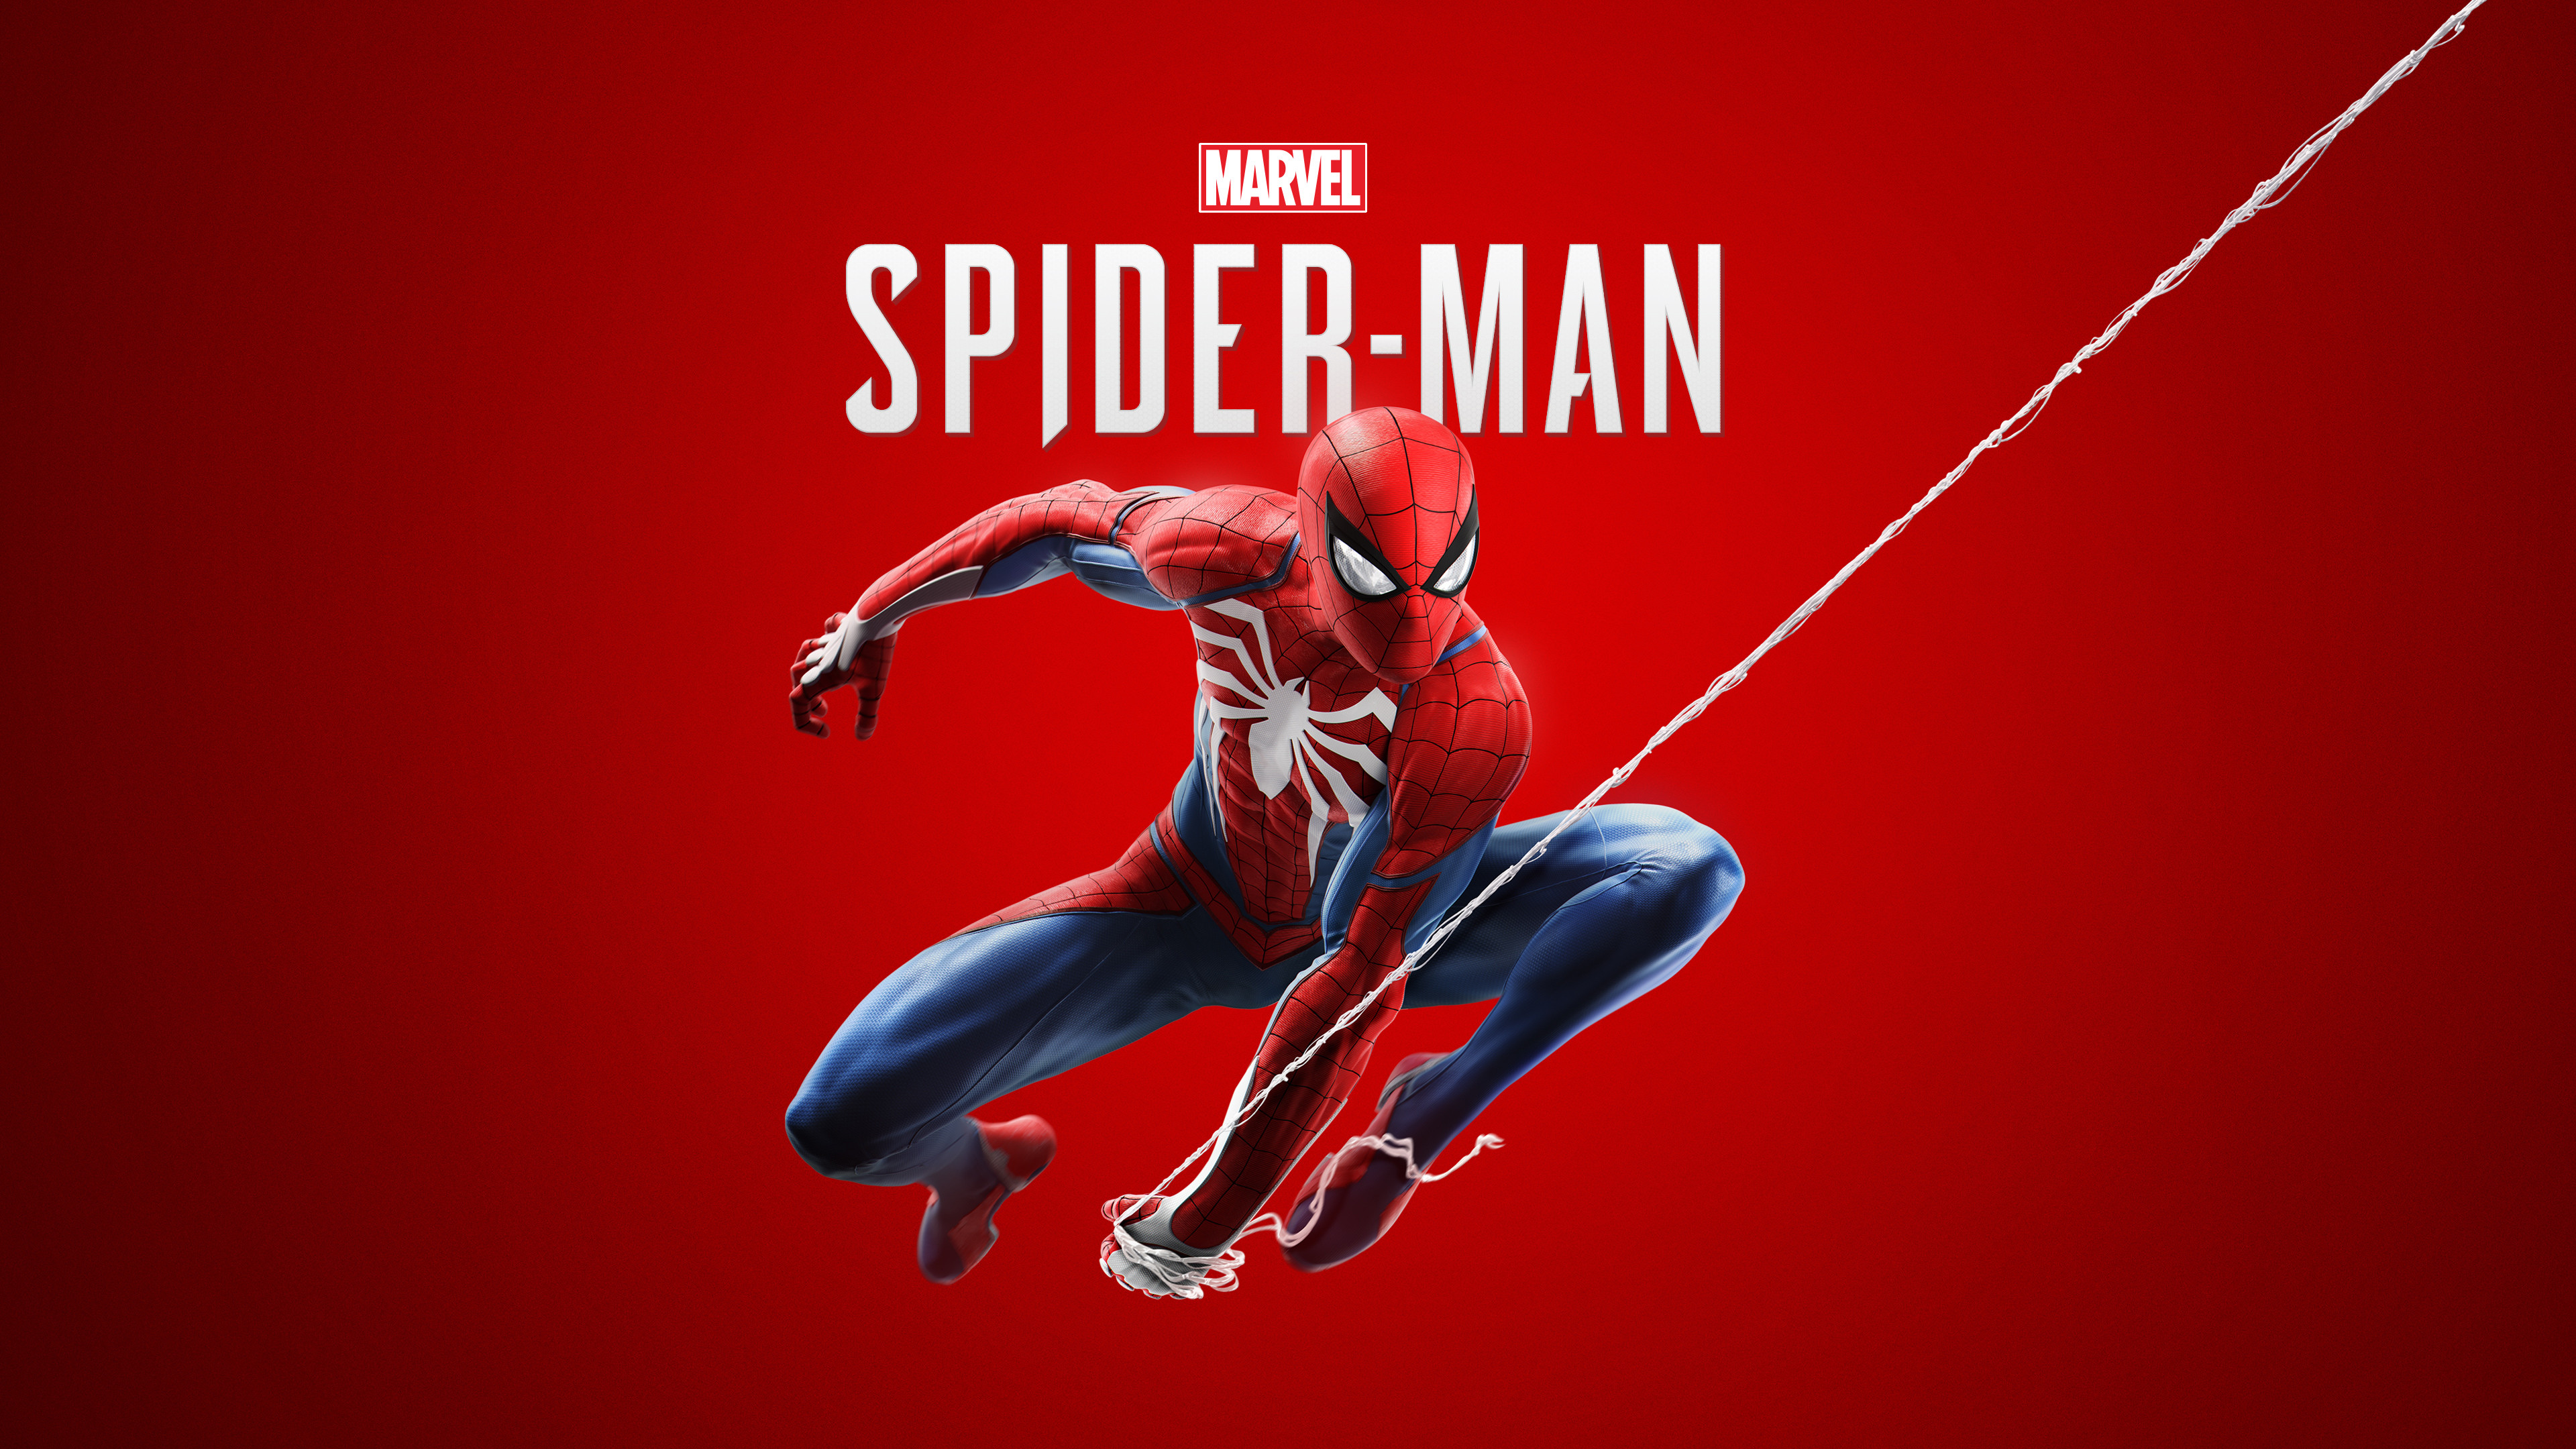 Spider Man 2018 Ps4 Game Wallpaper Hd Games 4k Wallpapers Images Photos And Background